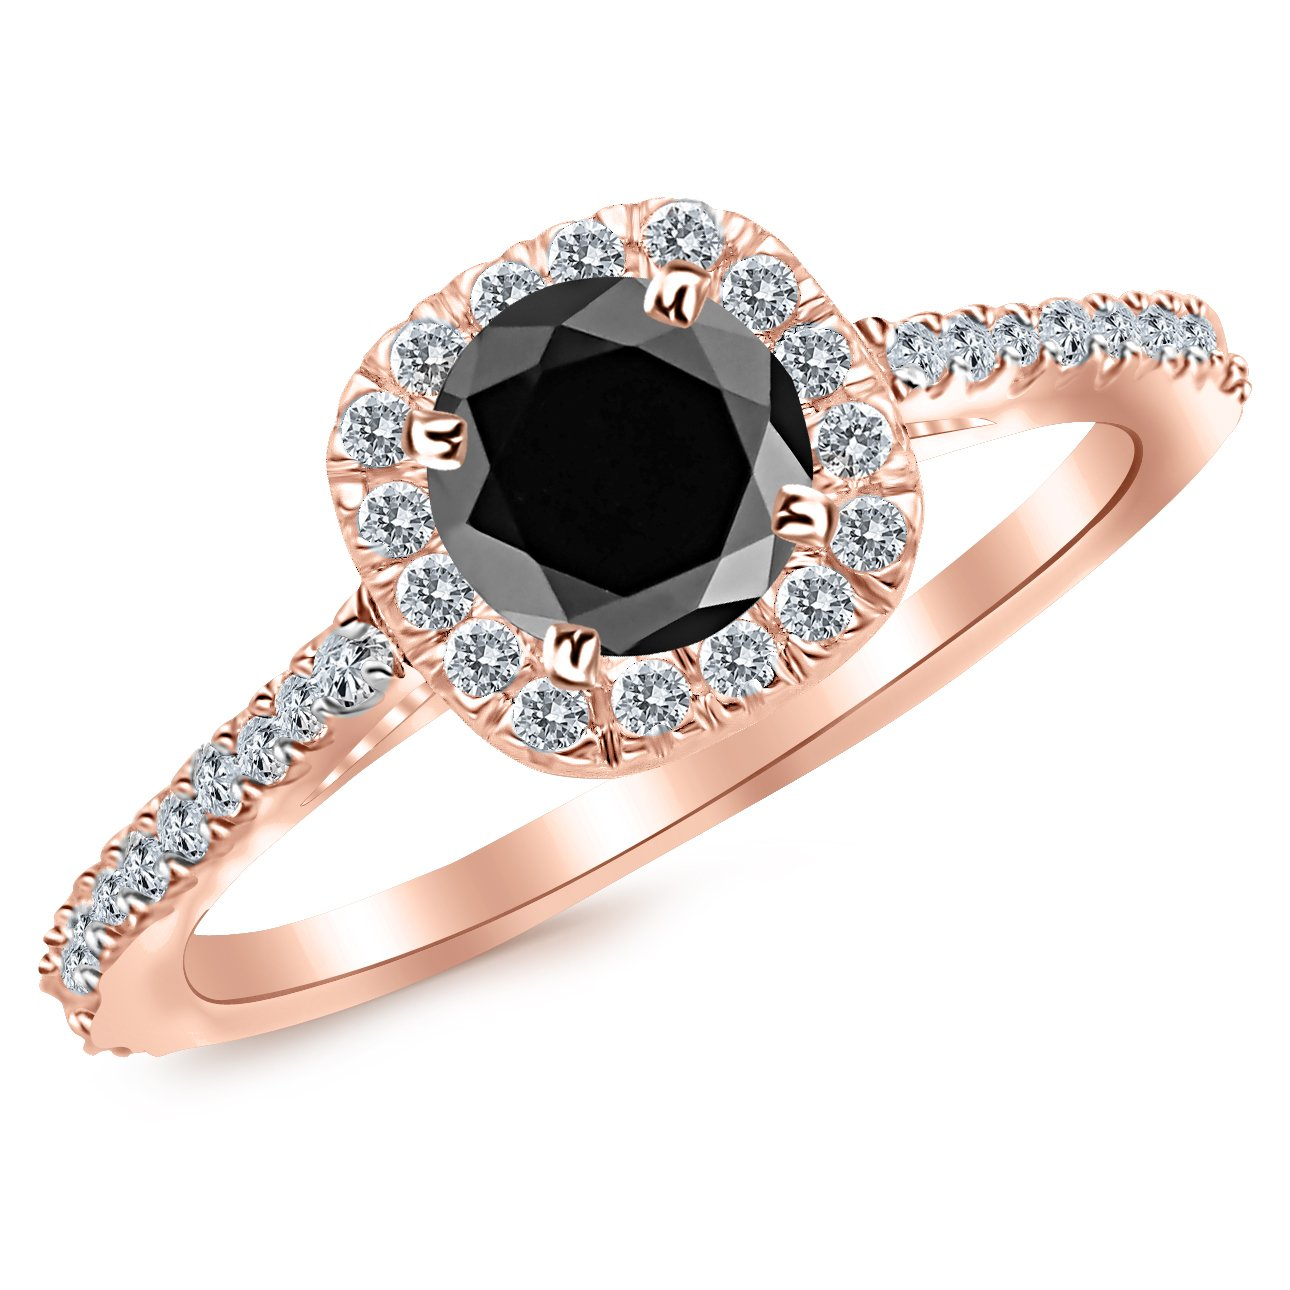 2.35 Carat 14K Rose Gold Gorgeous Classic Cushion Halo Style Diamond Engagement Ring 14K Rose Gold with a 2 Carat Round Cut AAA Quality Black Diamond (Heirloom Quality)